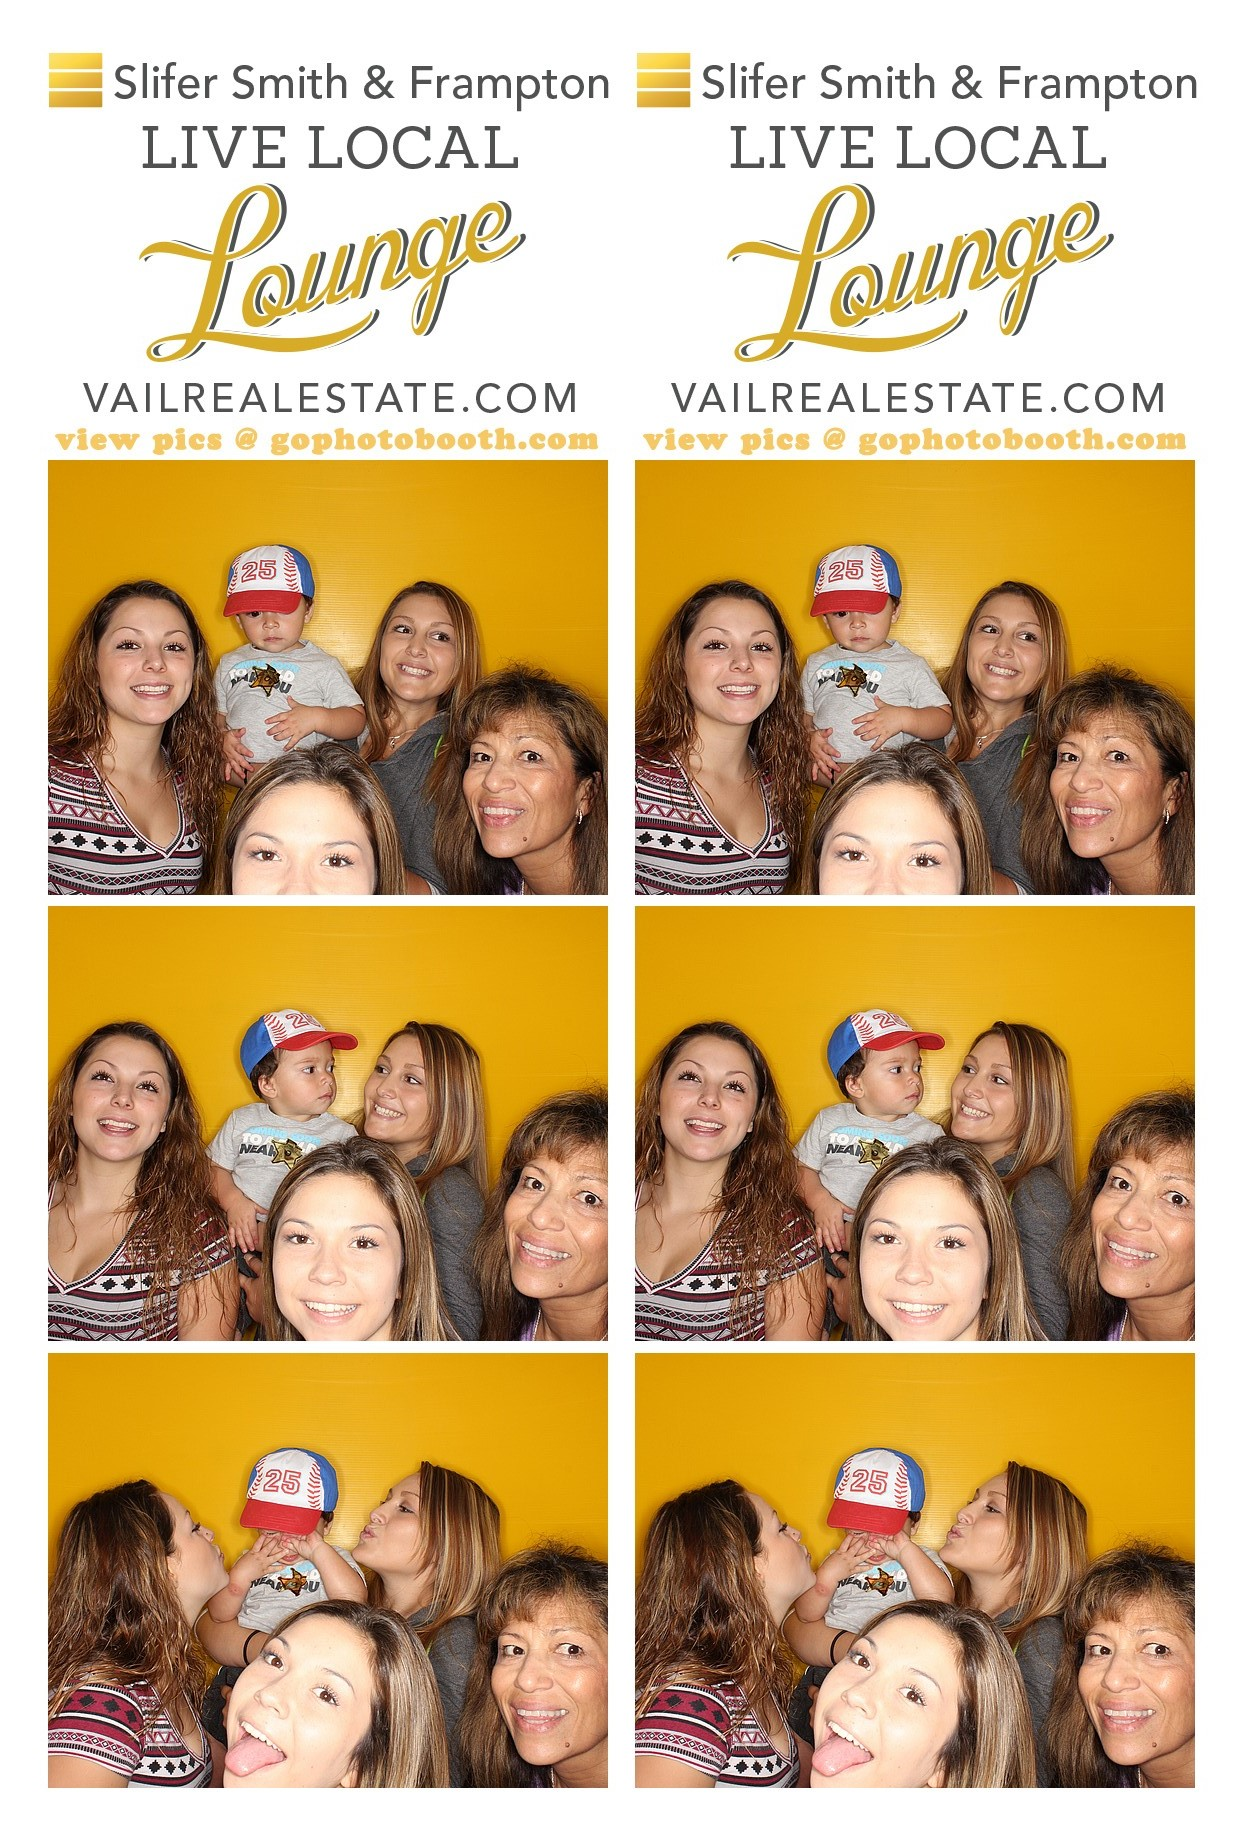 Slifer Vail Farmer's Market Photo Booth 7/12/15